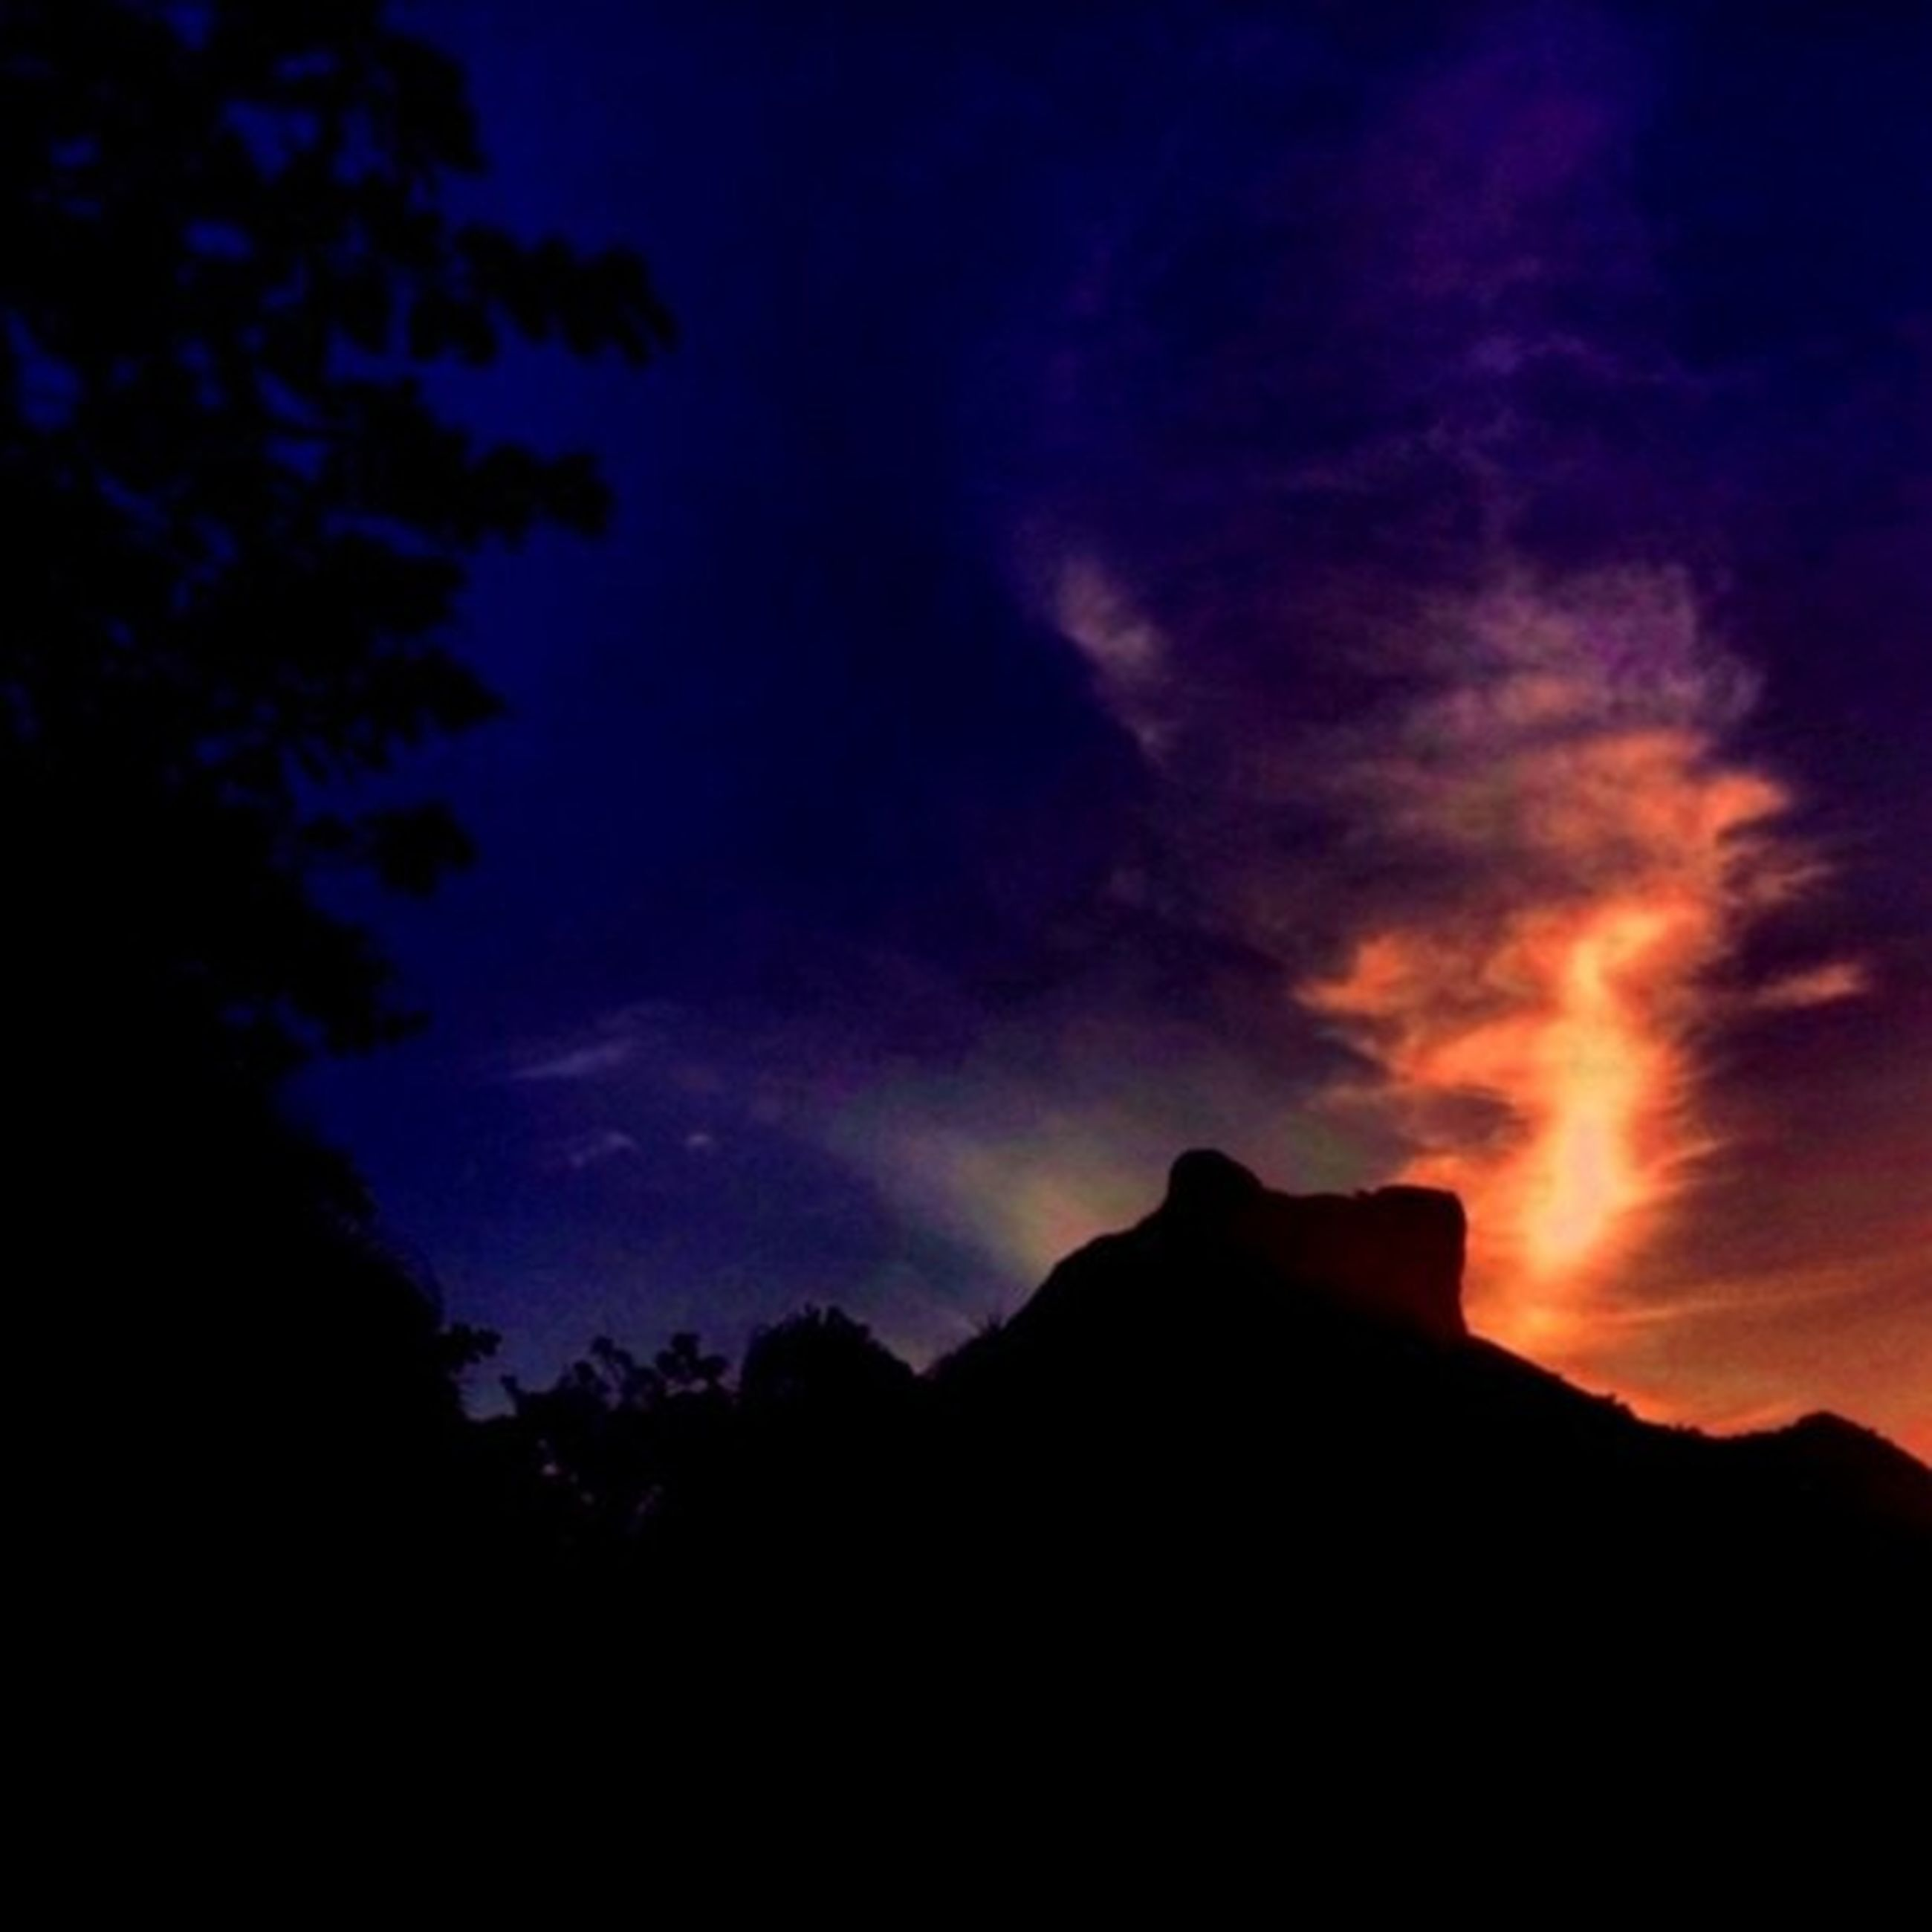 silhouette, sky, sunset, scenics, beauty in nature, cloud - sky, tranquil scene, tranquility, nature, mountain, dusk, tree, dramatic sky, cloud, cloudy, idyllic, low angle view, dark, outdoors, landscape